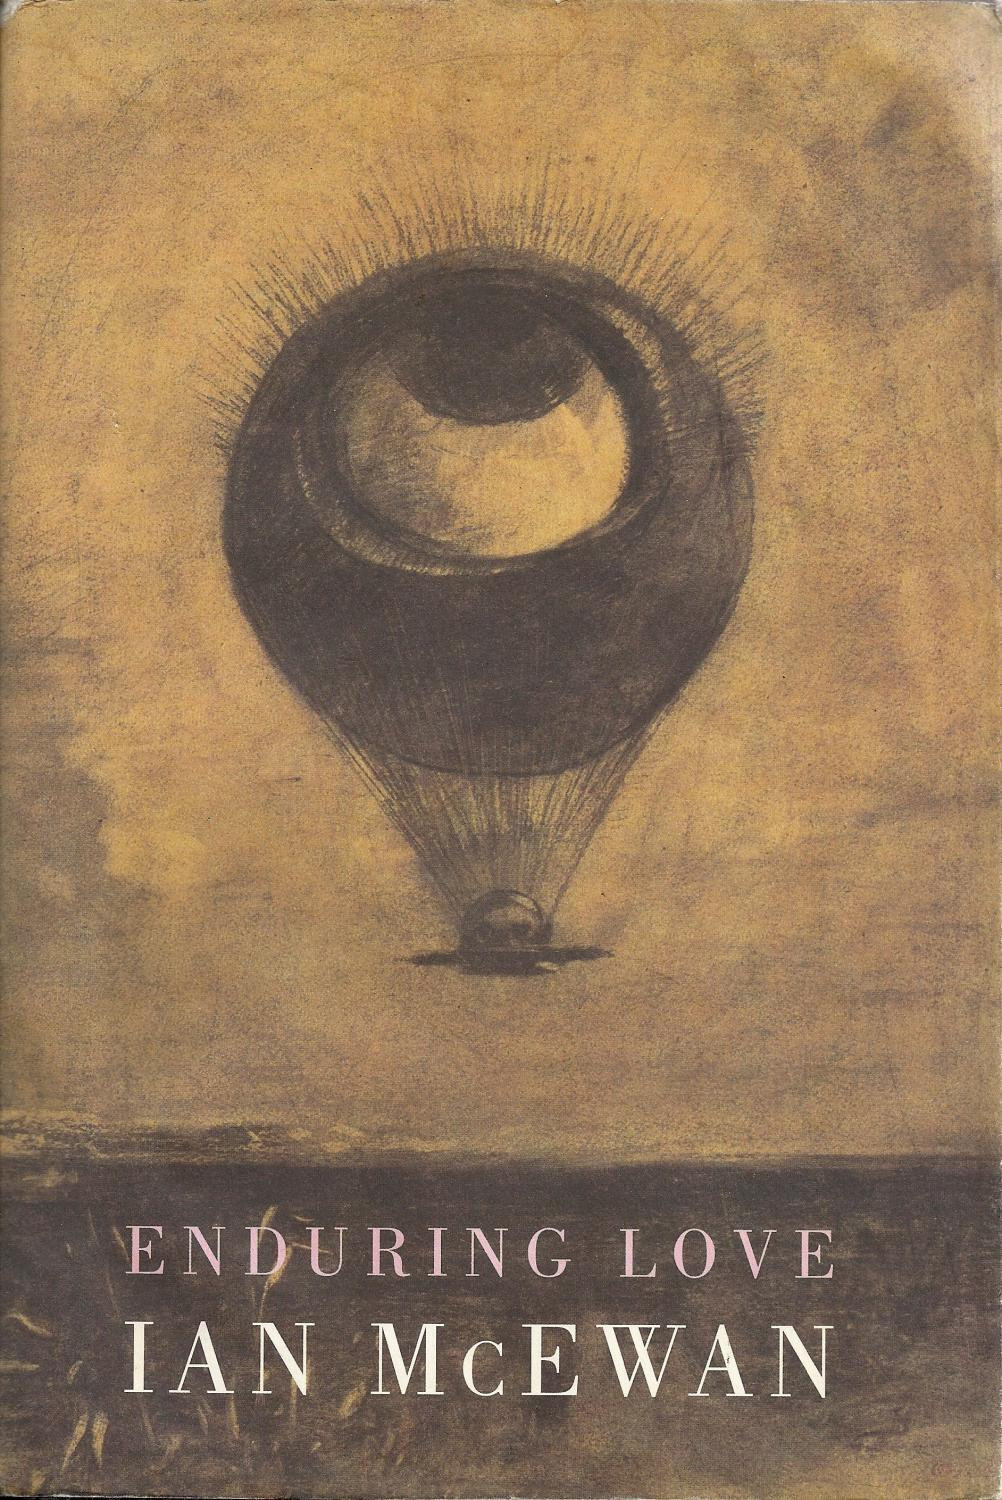 enduring love by mcewan 1997 first edition signed